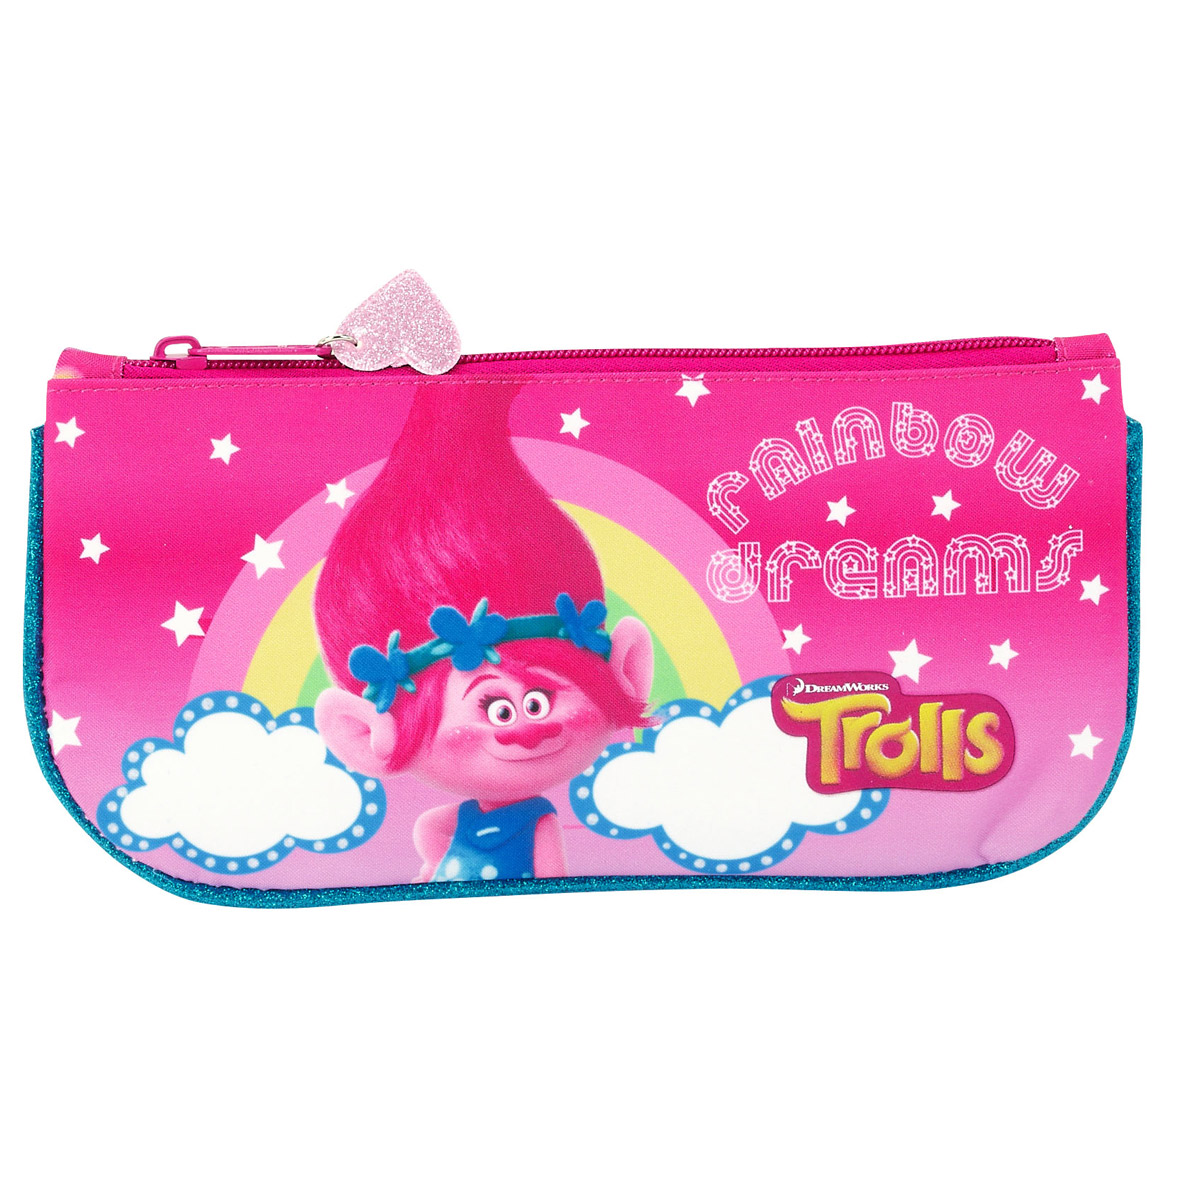 Trolls Poppy 3 Piece Set Bundle Bags – image 6